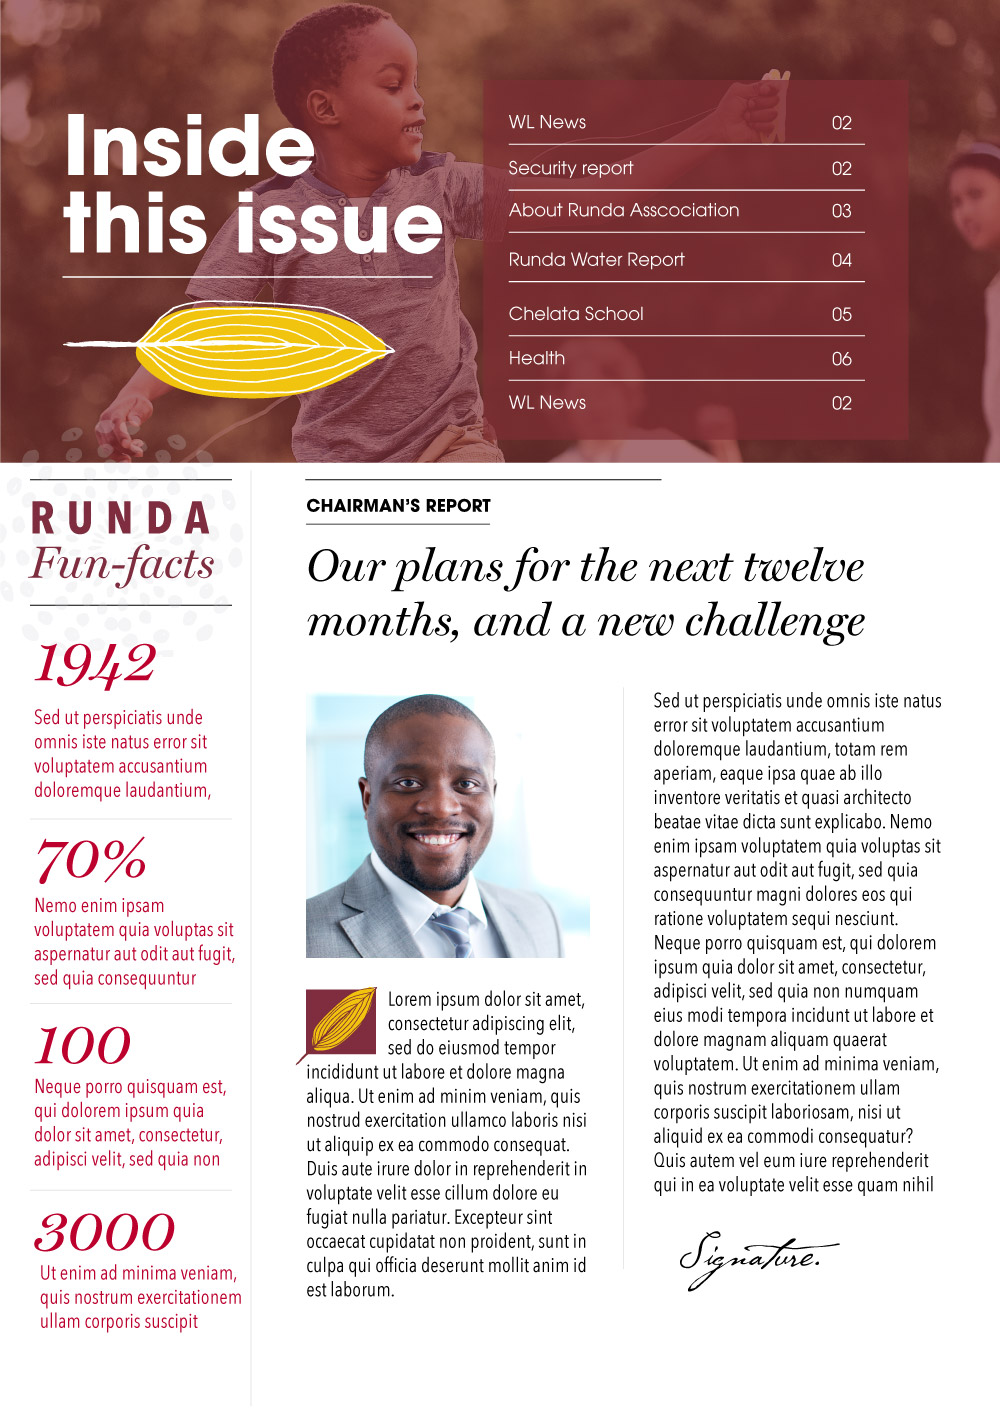 Runda_Newsletter-02